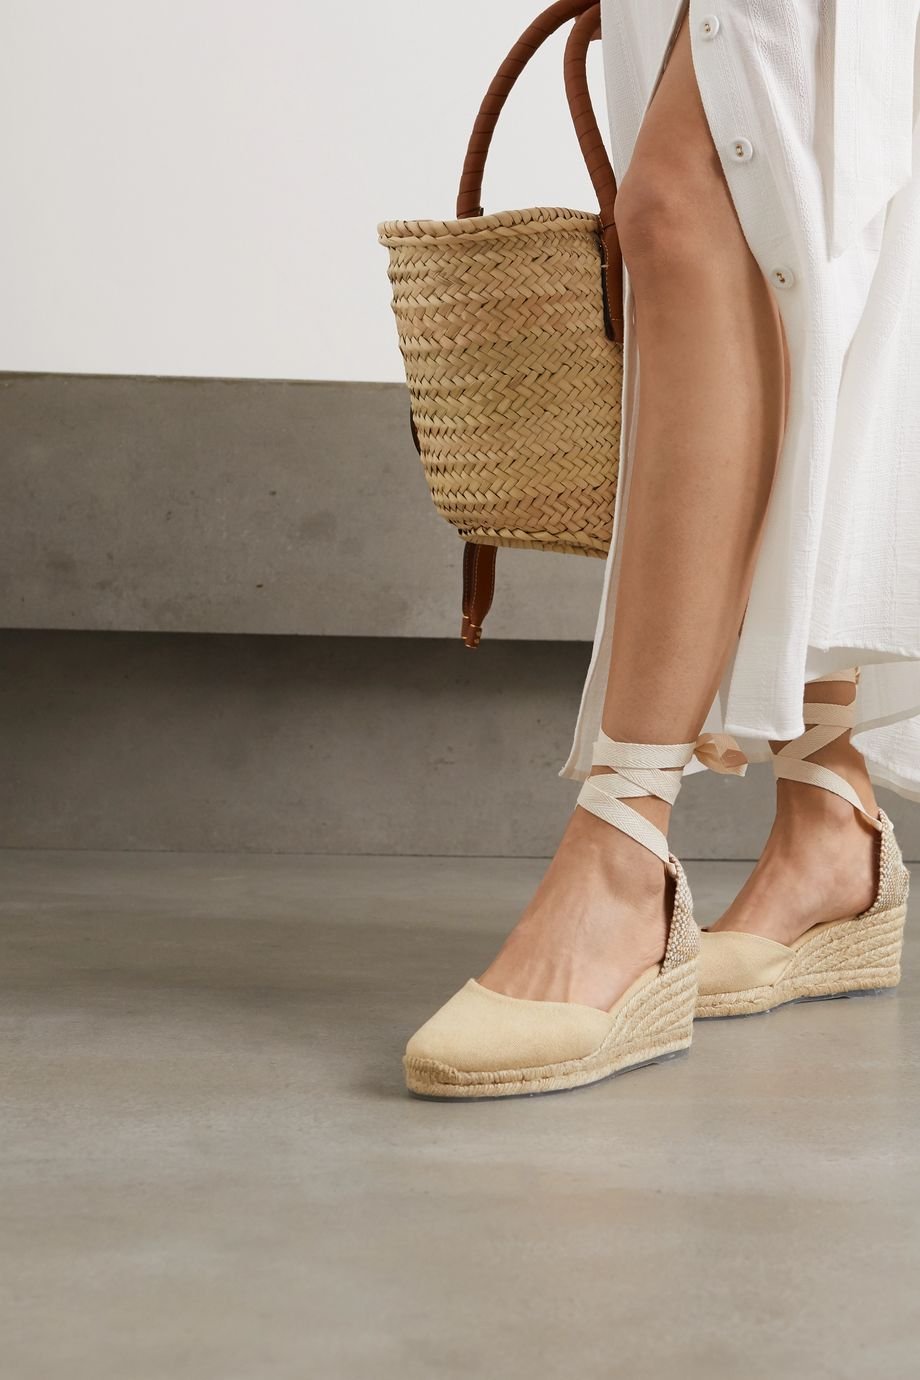 Castañer + NET SUSTAIN Carina 60 canvas wedge espadrilles